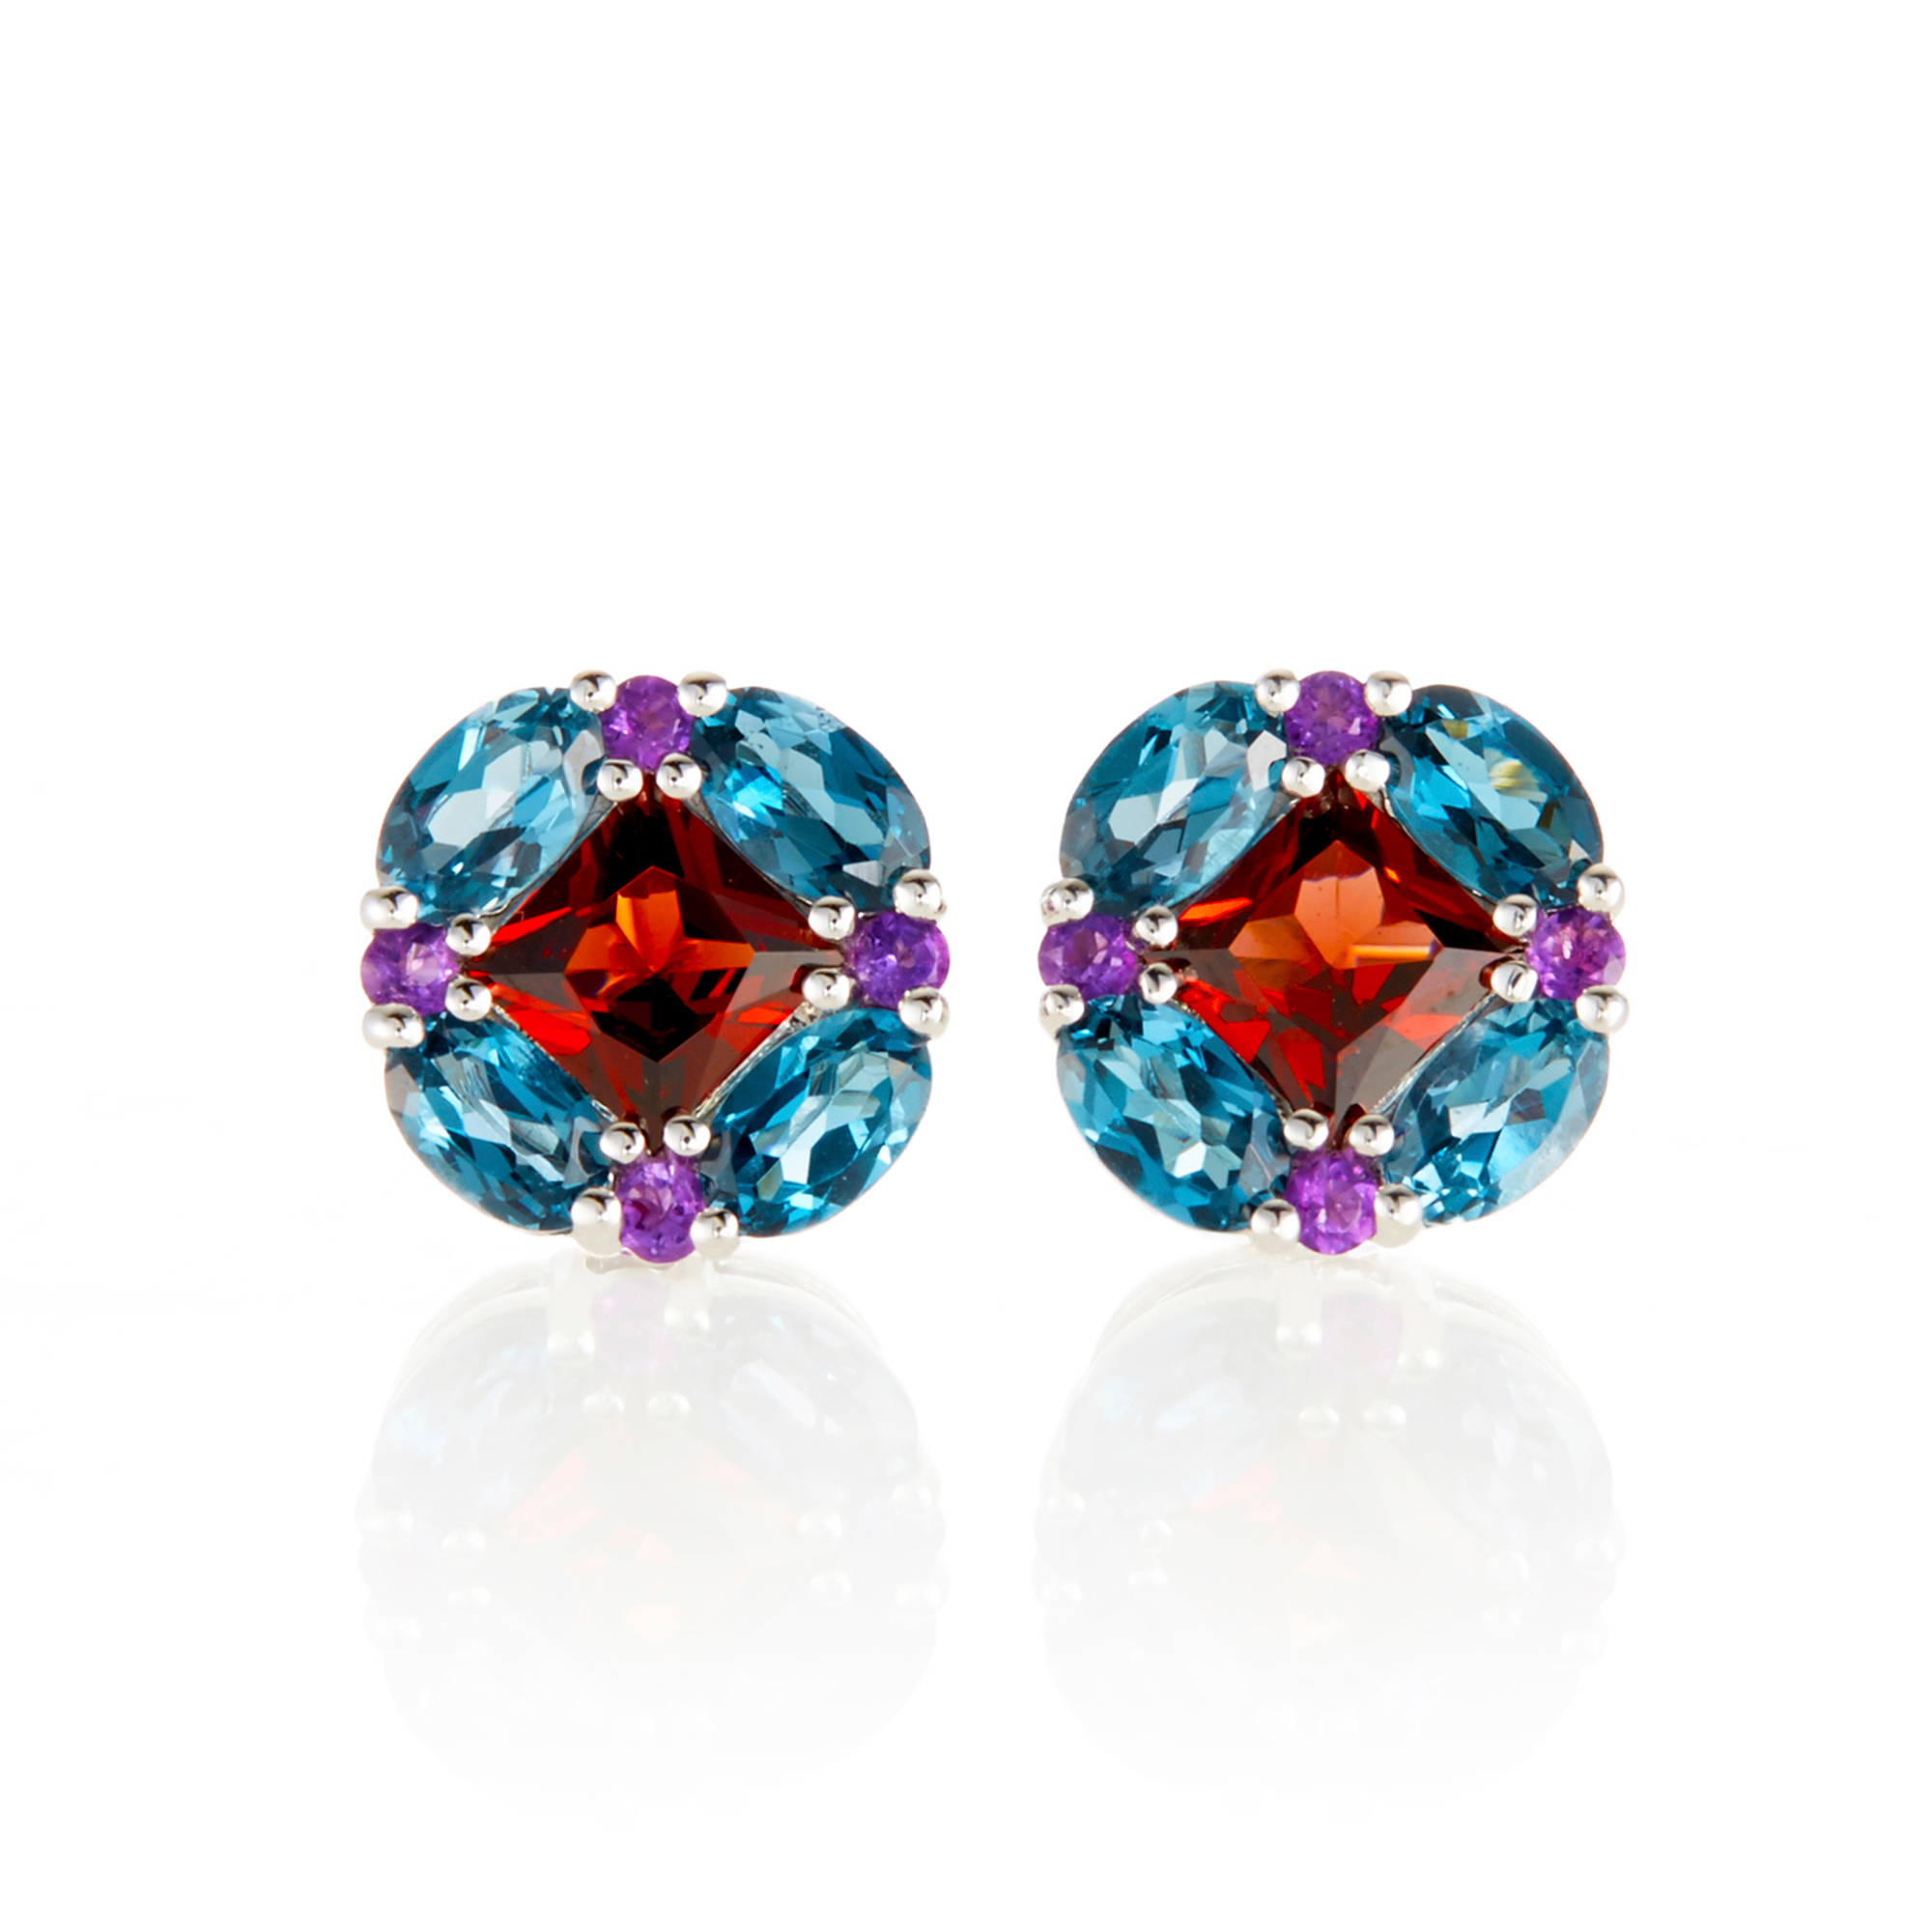 Gump's Garnet, Blue Topaz, & Amethyst Quadrille Stud Earrings